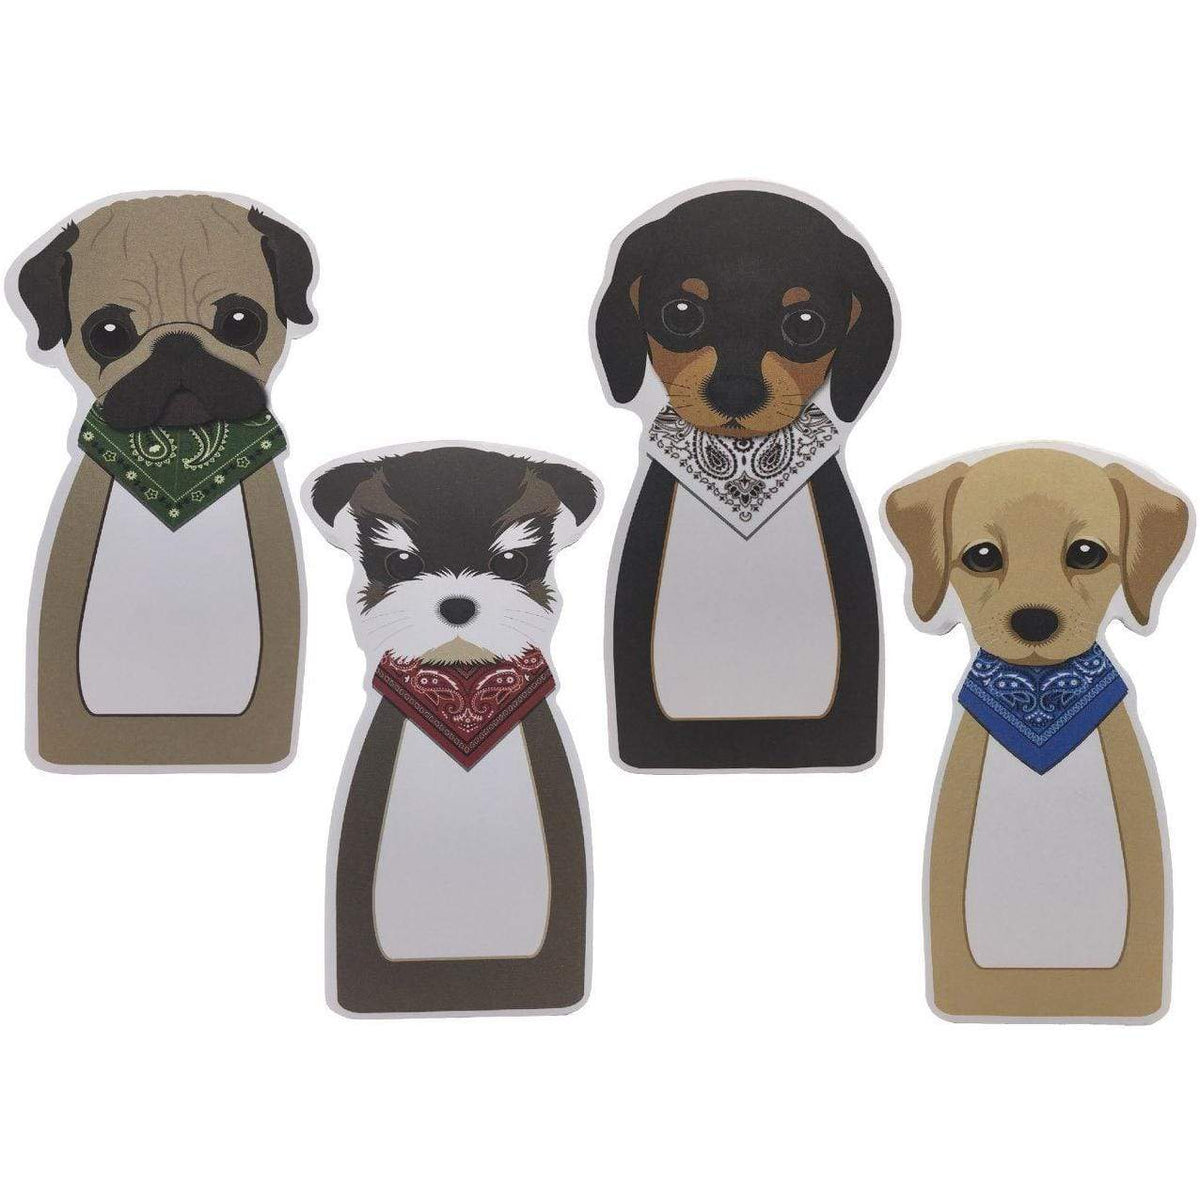 Puppy Memo Pads - Set of 4